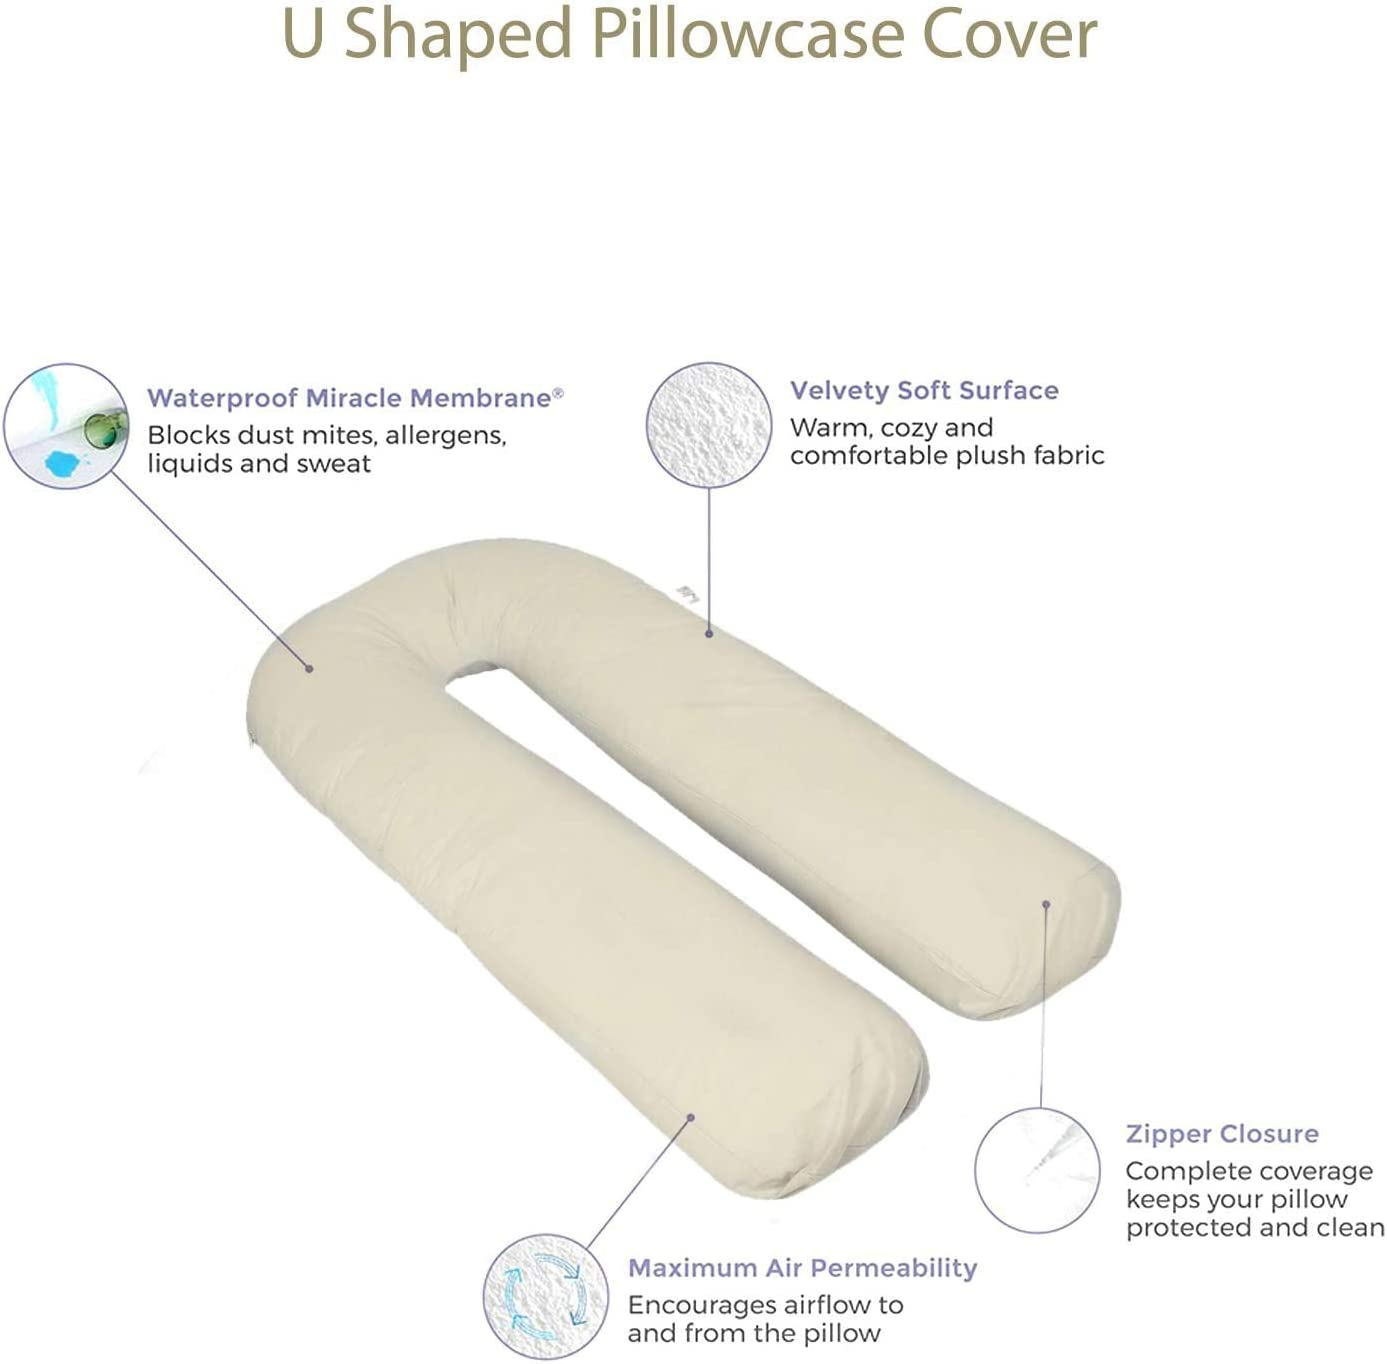 Maternity and Nursing Back Support Cuddle Muscle Relieve U Shaped Pillowcase White, 9 Feets Full Body Pregnancy Orthopedic Pillow Cover for Side Sleeping